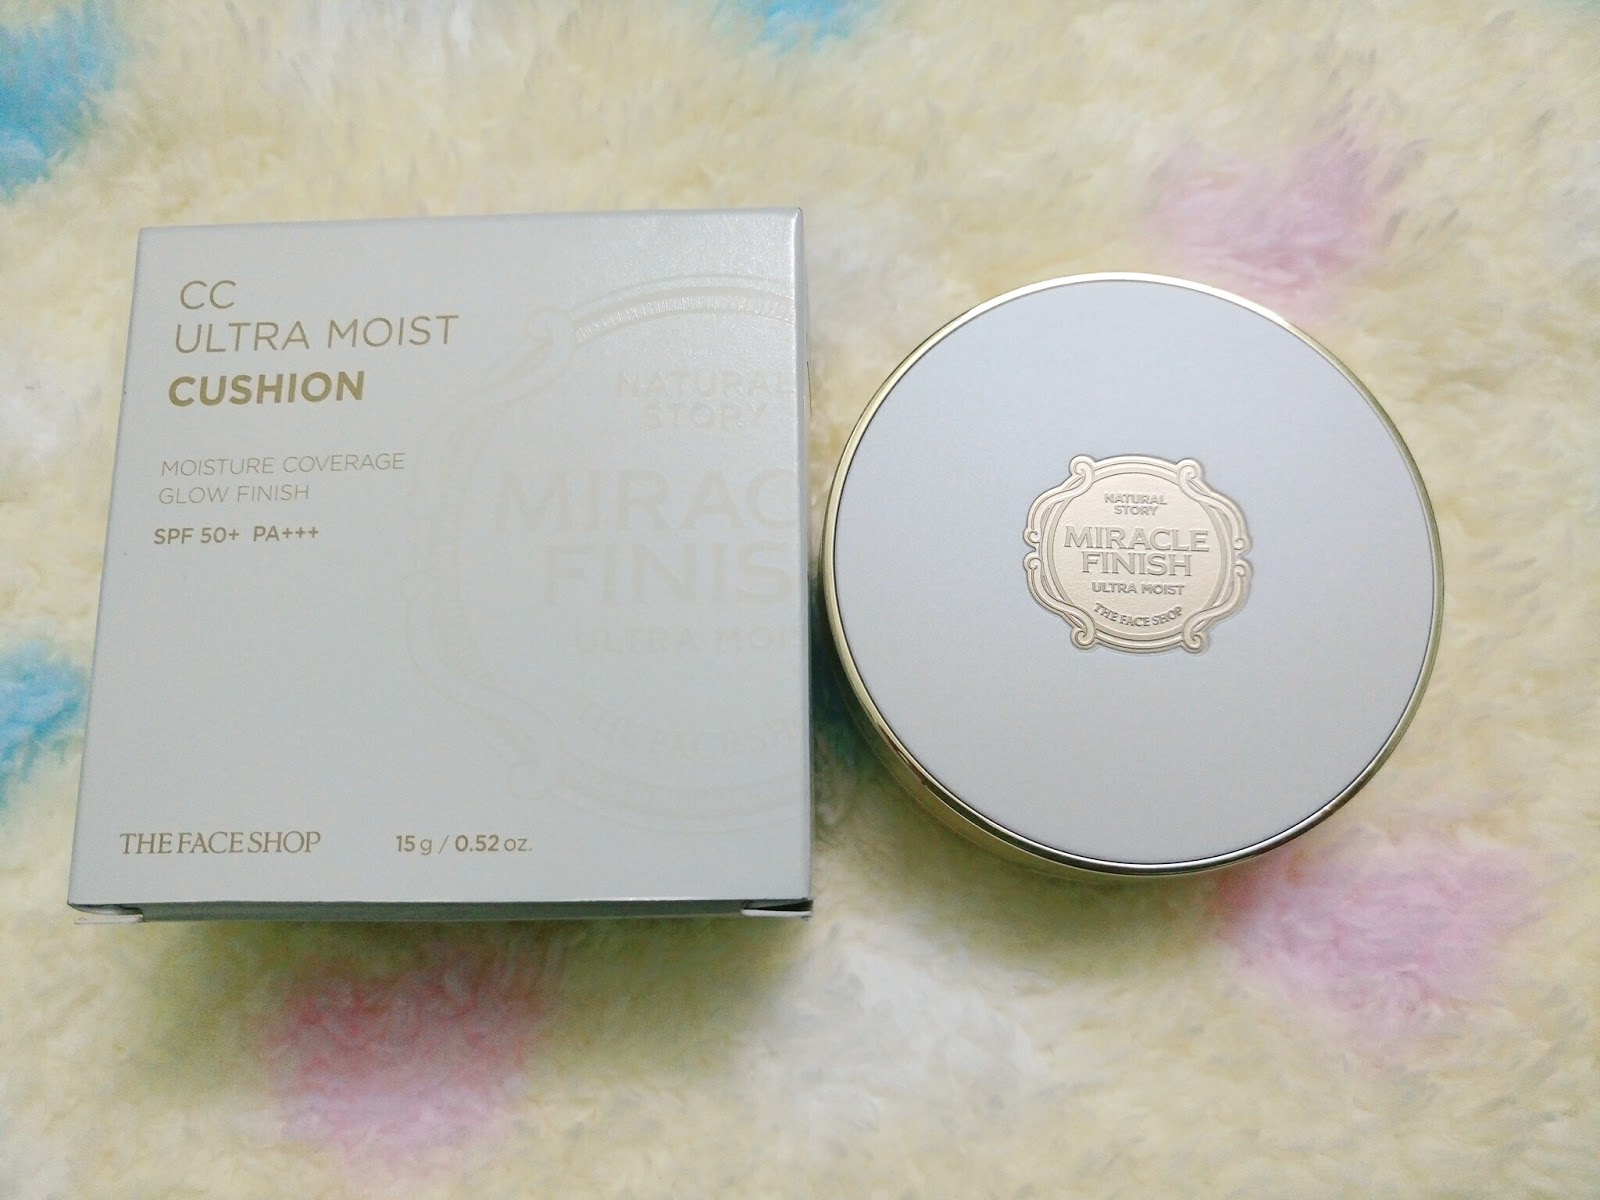 REVIEW] THE FACE SHOP MIRACLE FINISH CC ULTRA MOIST CUSHION